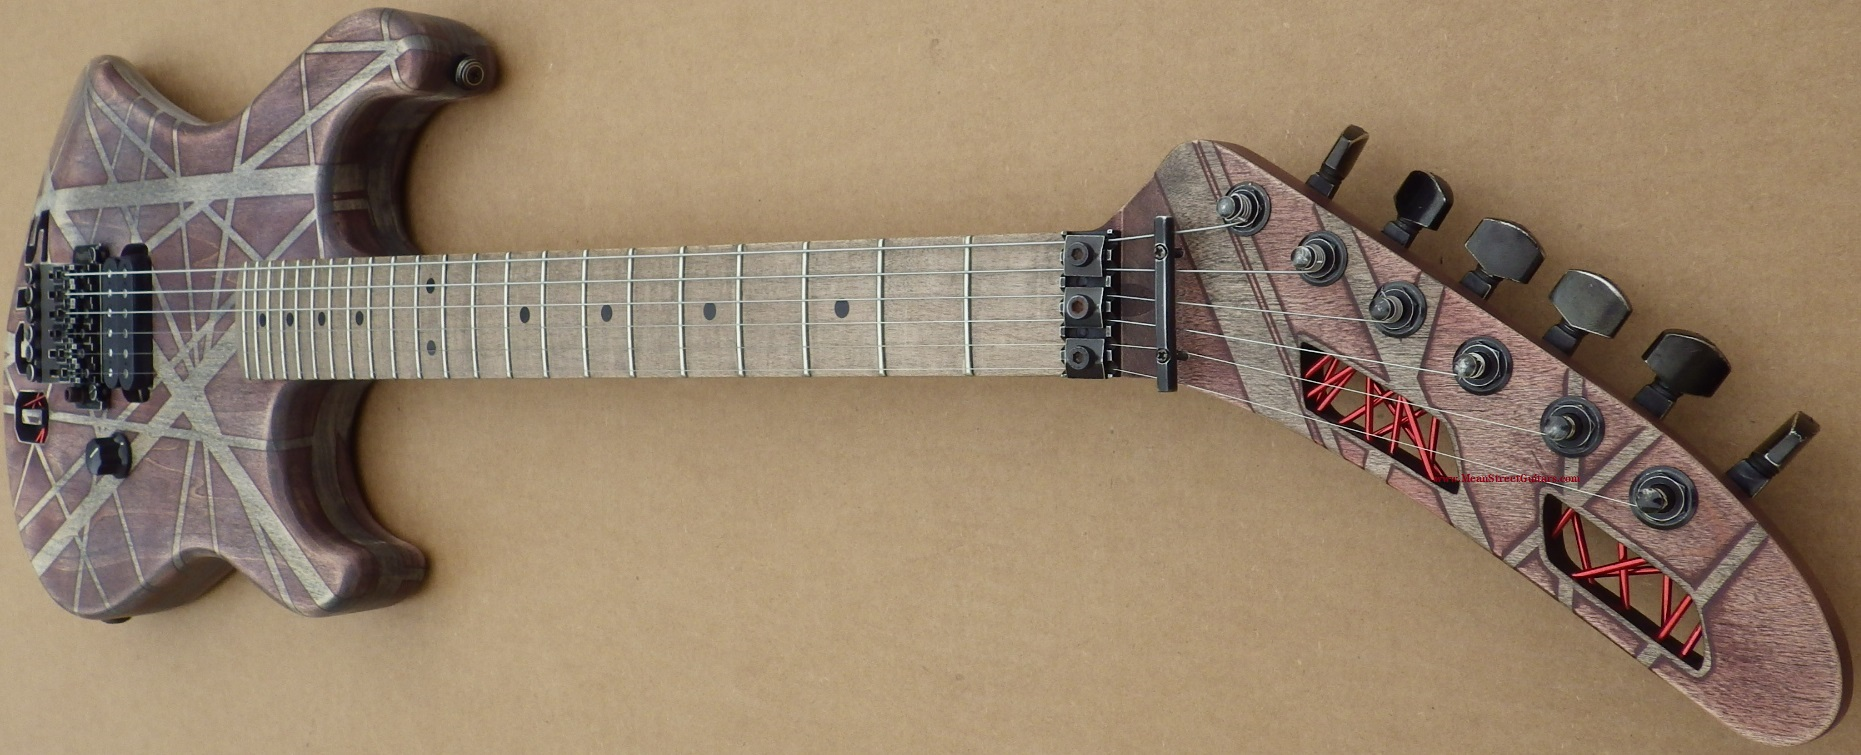 Mean Street Guitars Industrial 50 1 50 Pipeline 01 maroon pic 15.jpg